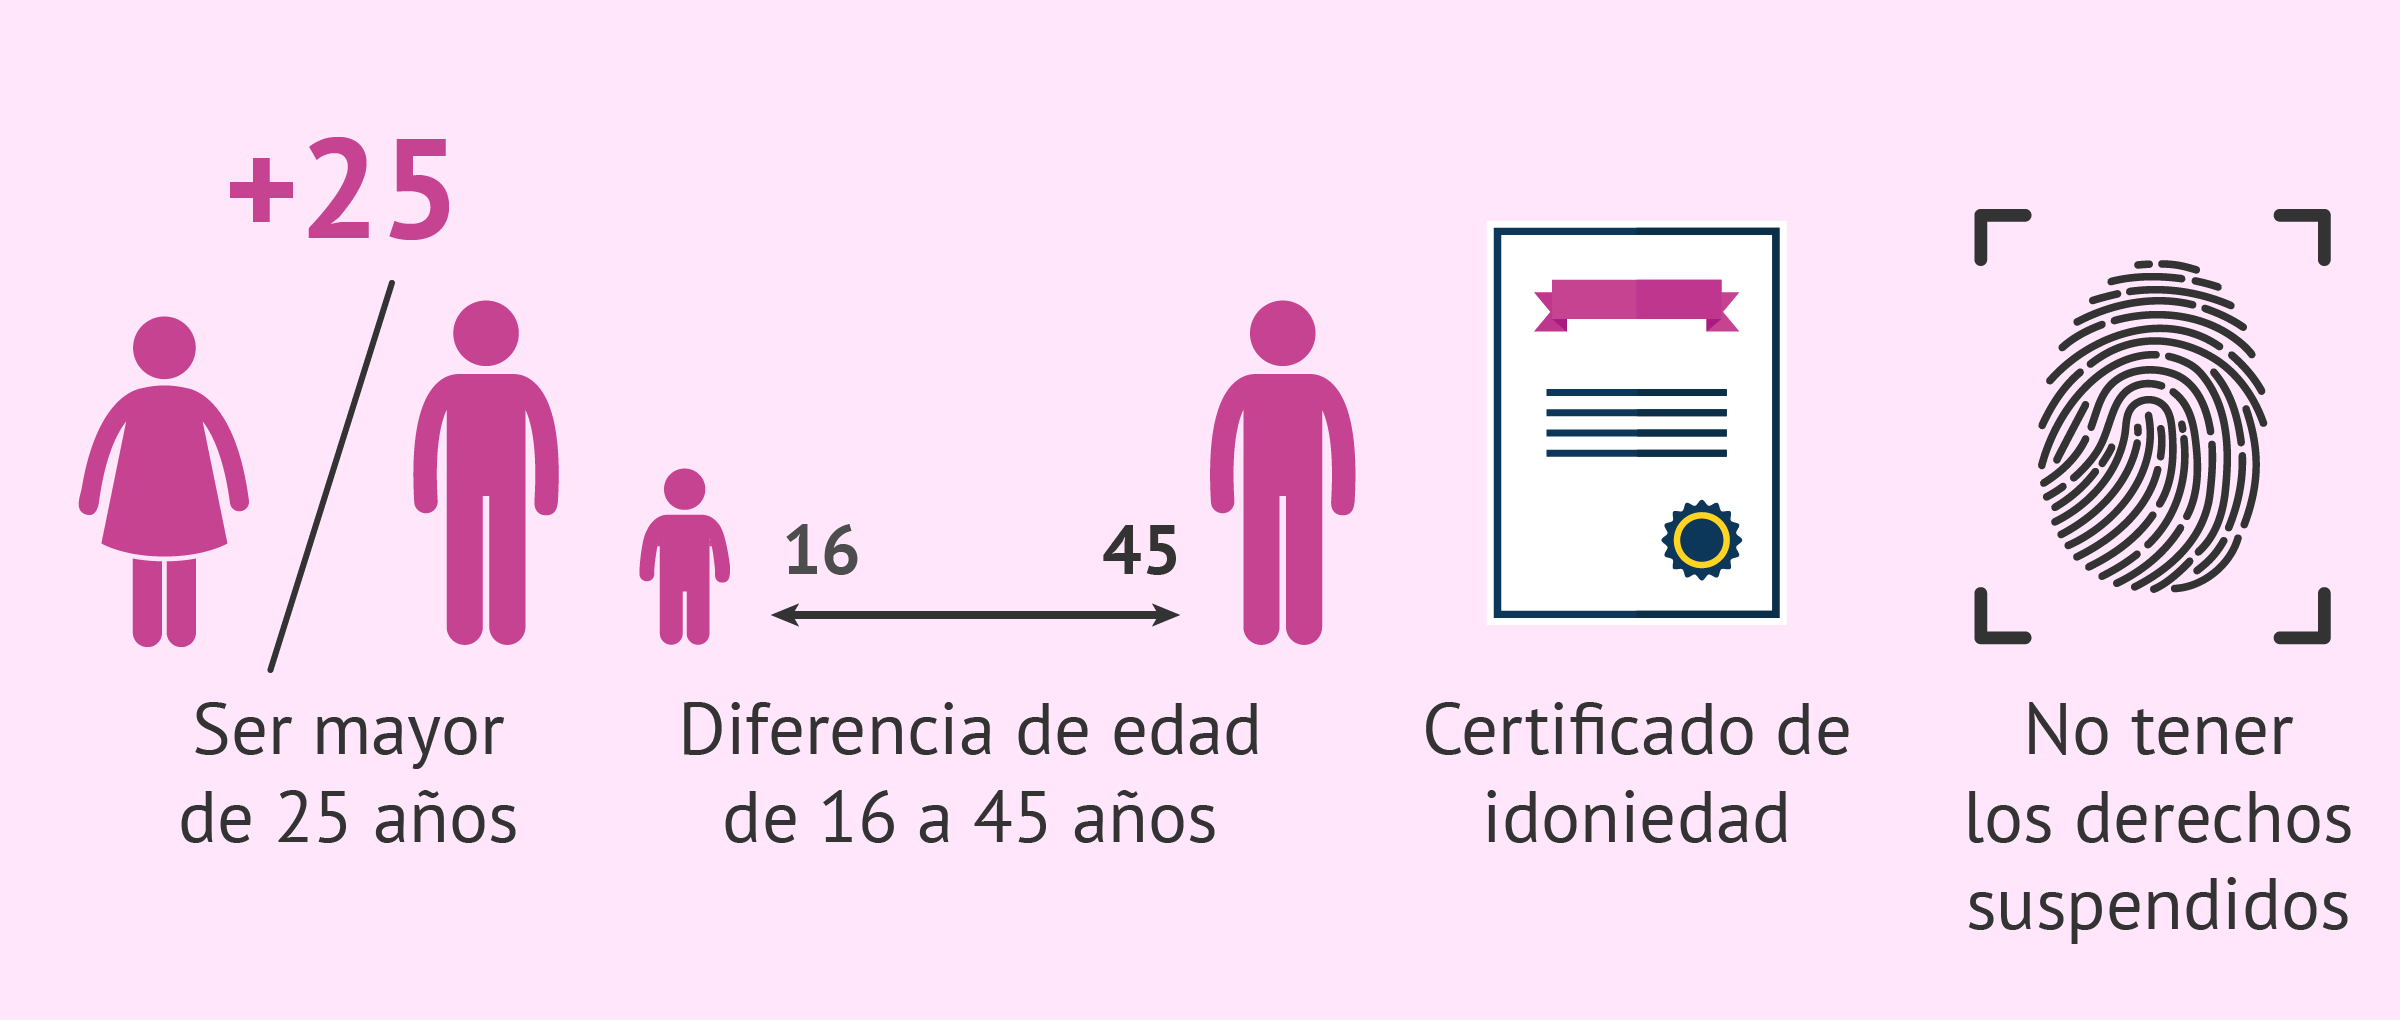 Requisitos para la adopción monoparental